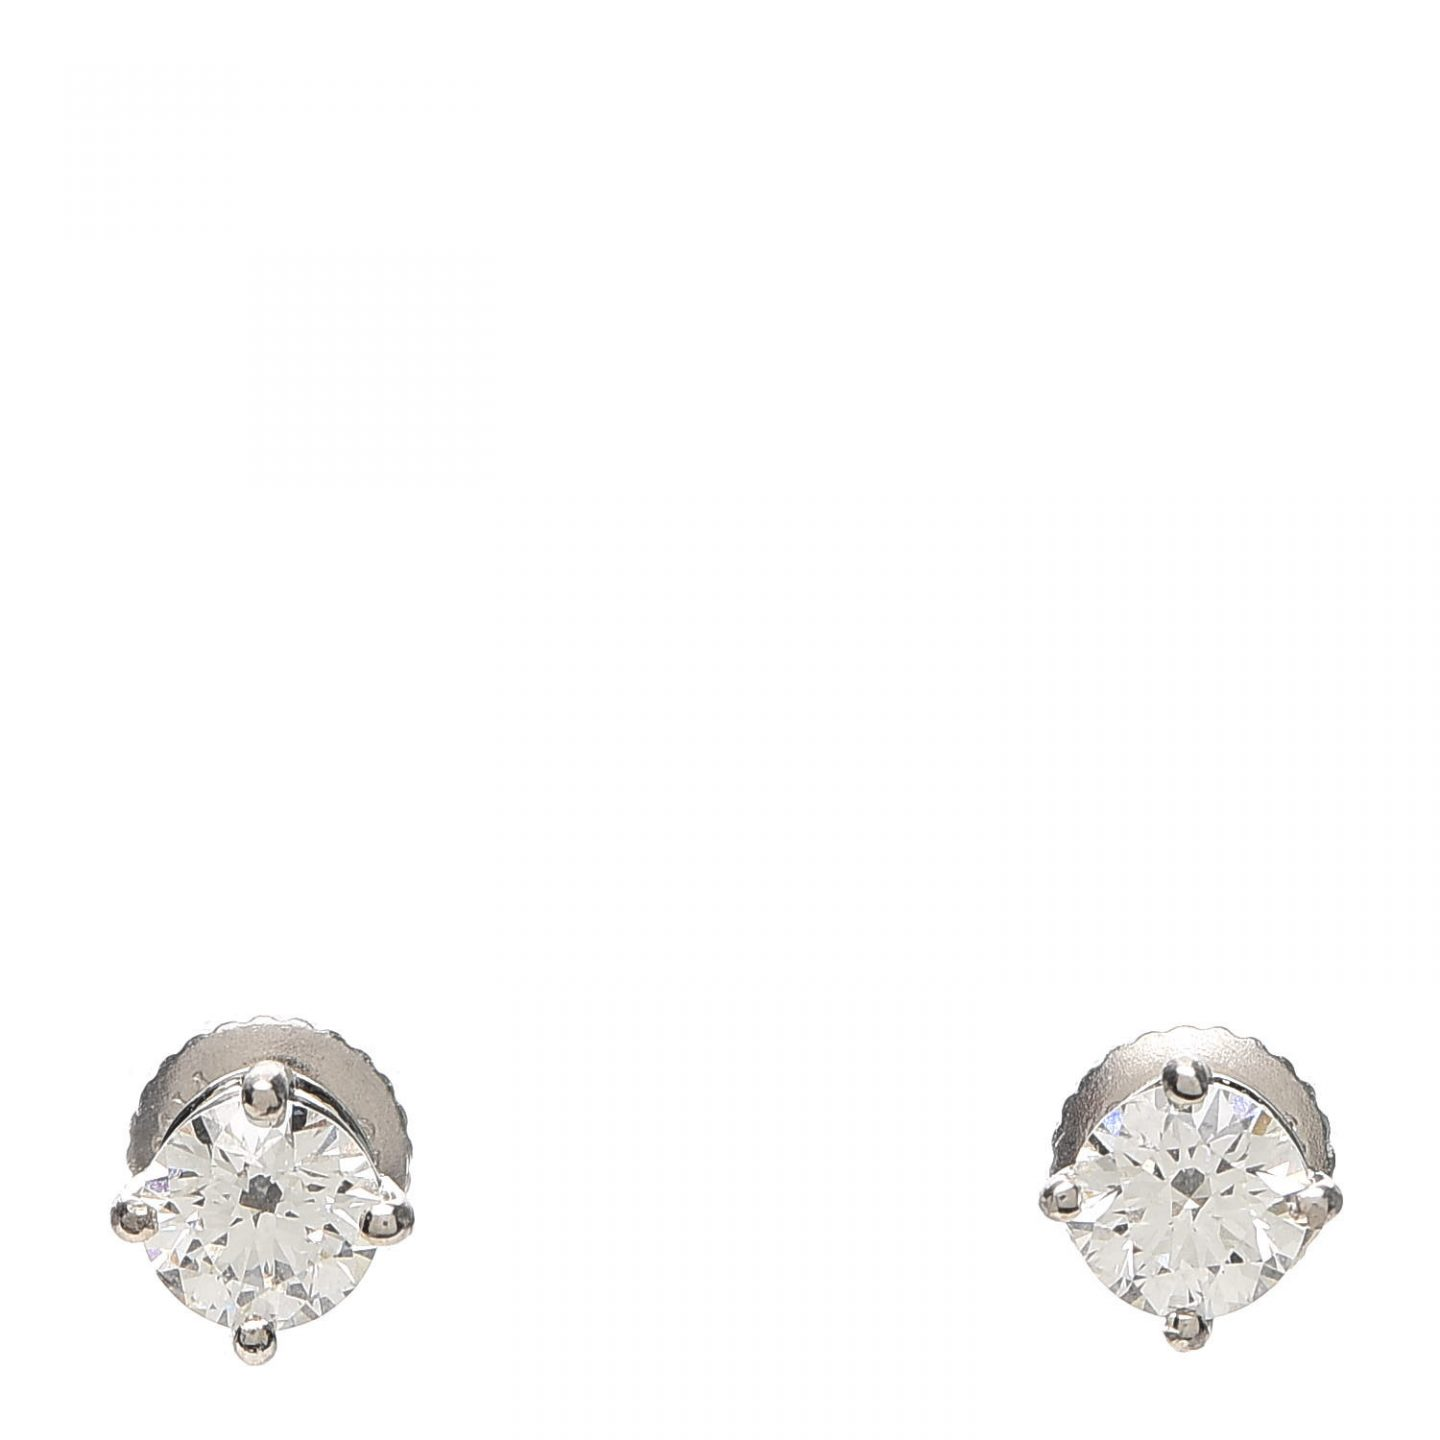 Tiffany Platinum Solitaire Earrings